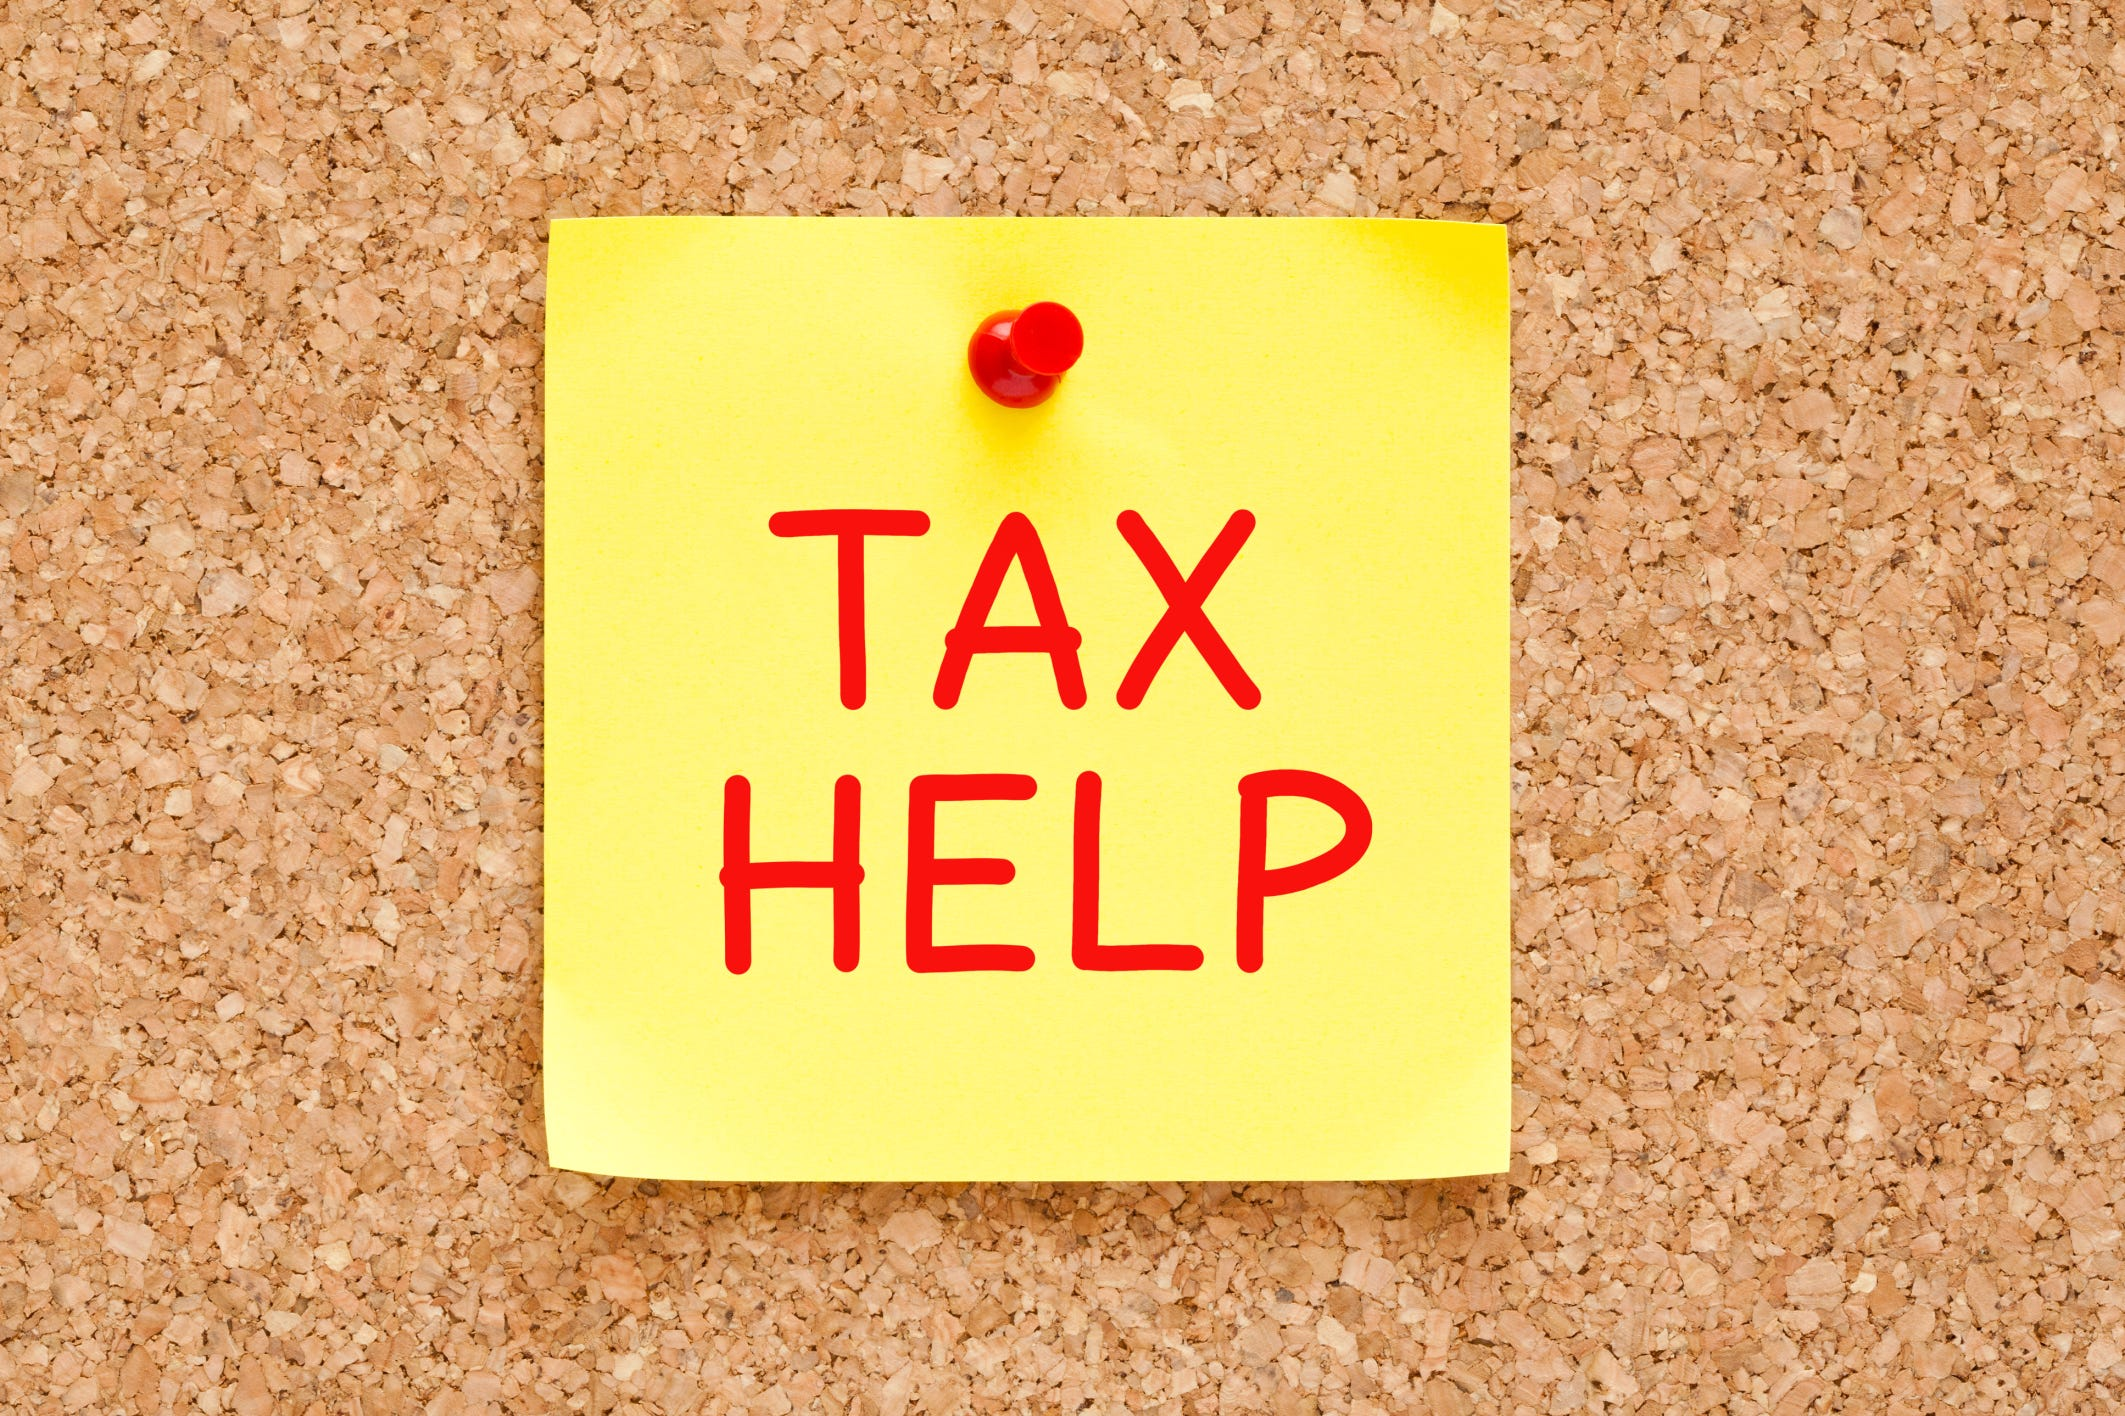 Get your tax questions answered Monday at 2 p.m. ET